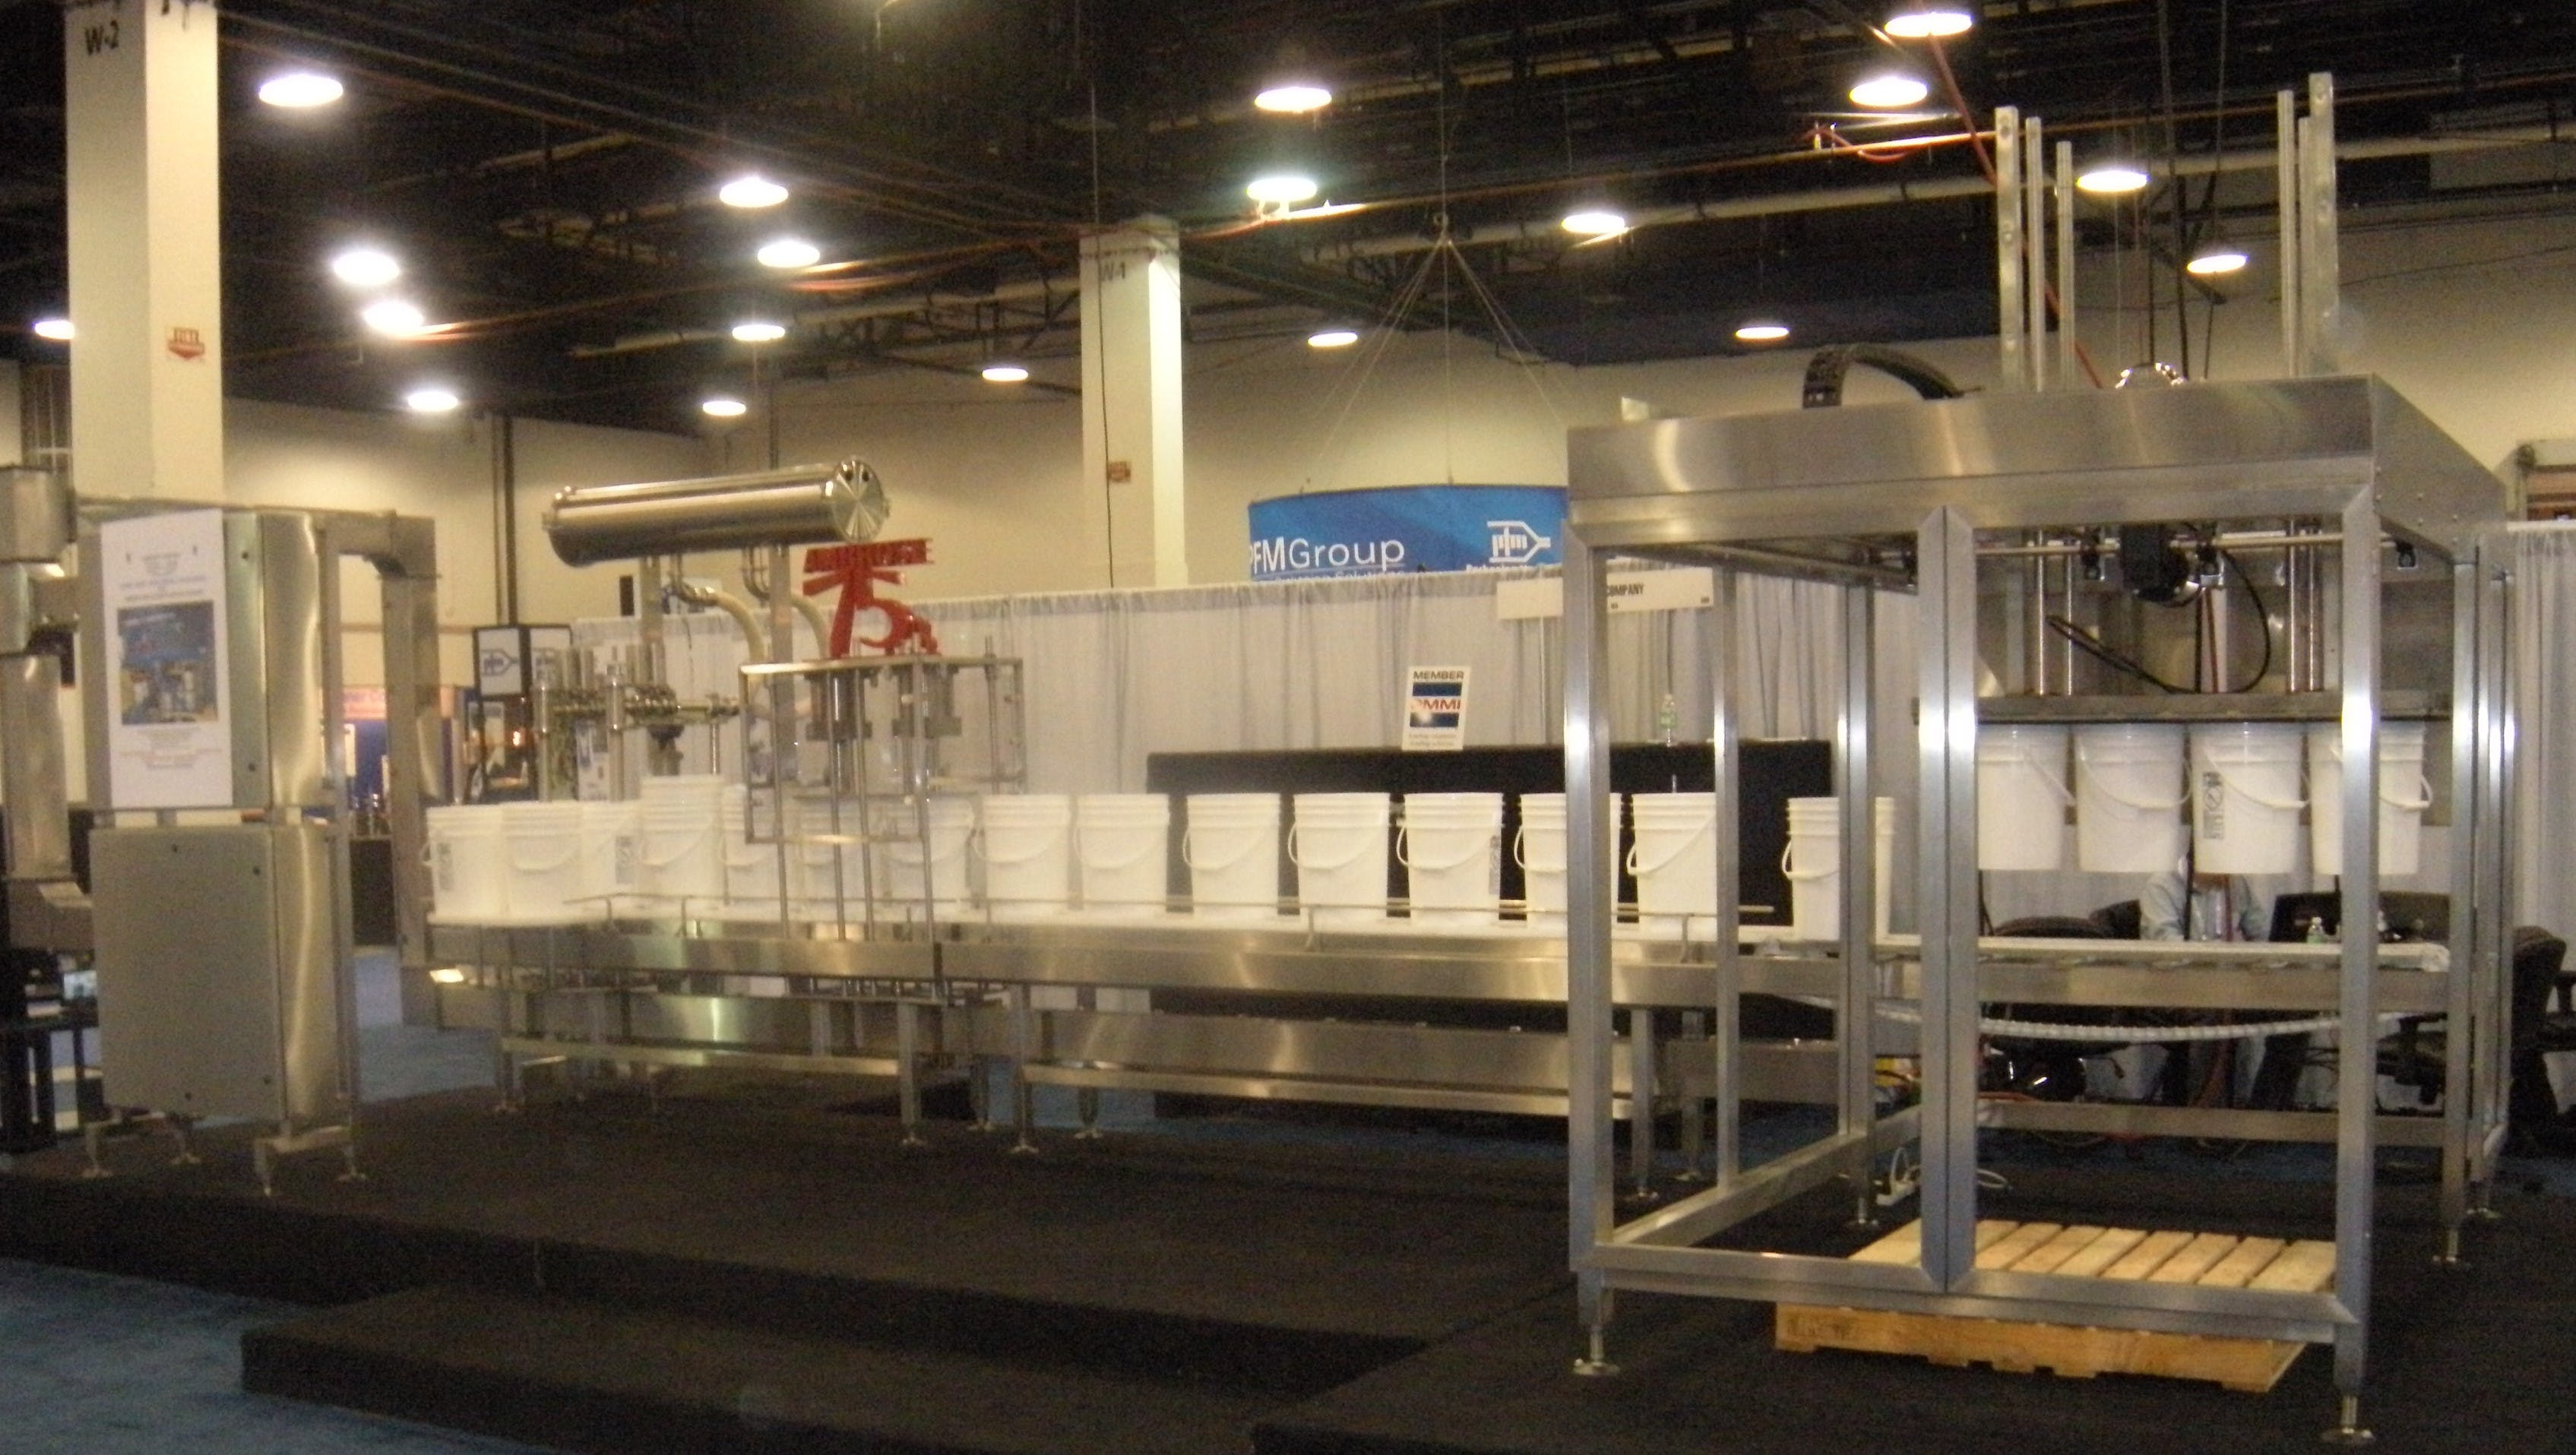 SEE OUR NEW MINI 5 LINE AT THE CHICAGO PACK EXPO IN NOV.   BOOTH N 4804 - sold by Ambrose Packaging Systems